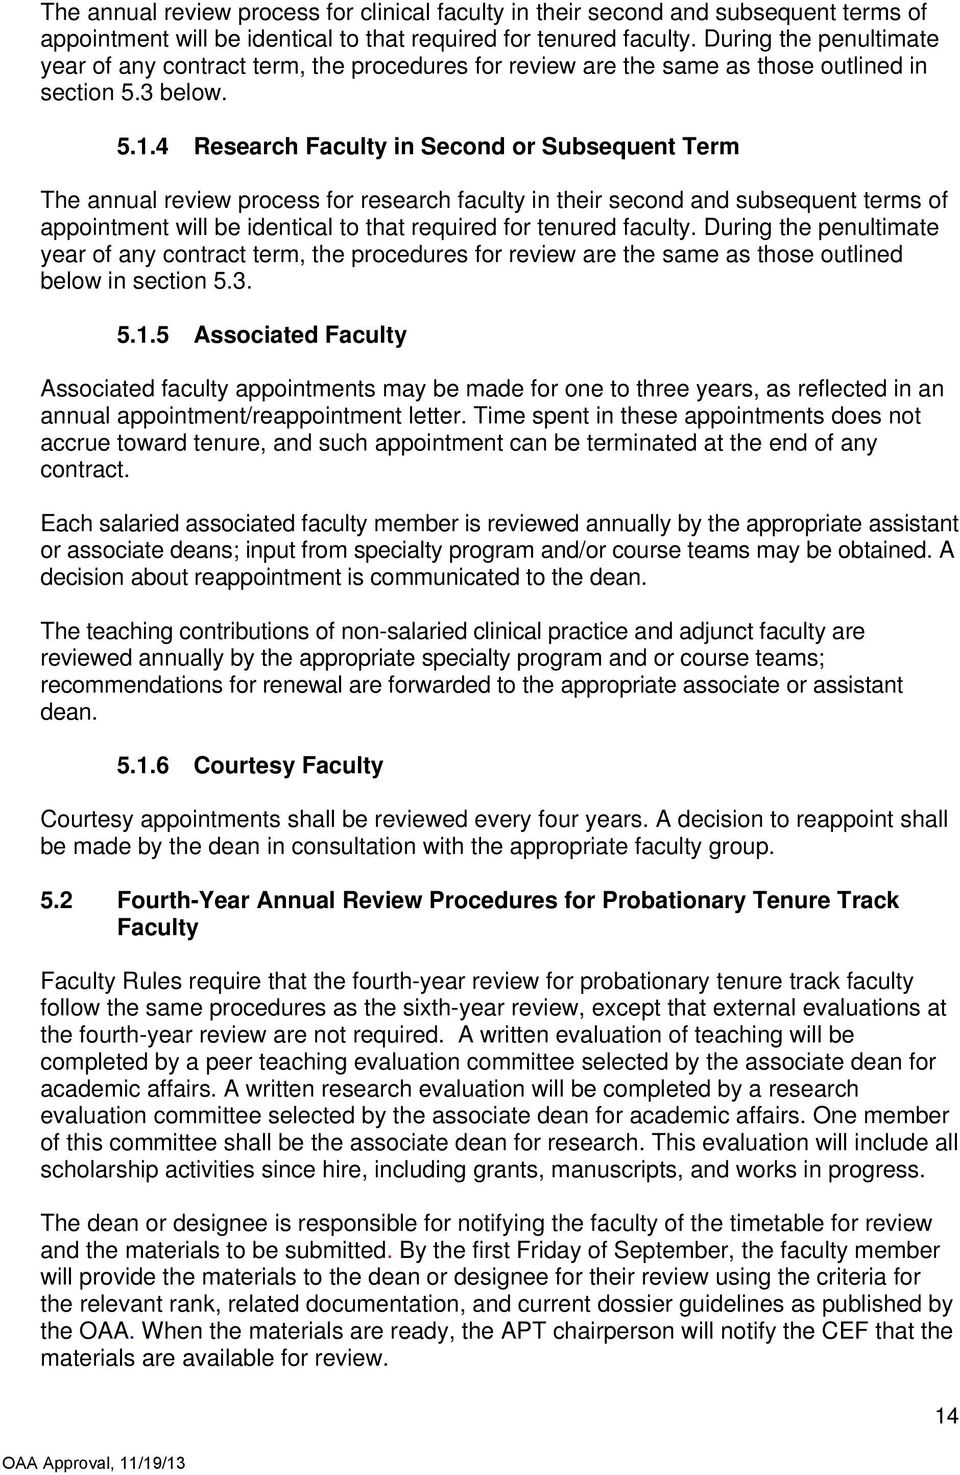 4 Research Faculty in Second or Subsequent Term The annual review process for research faculty in their second and subsequent terms of appointment will be identical to that required for tenured